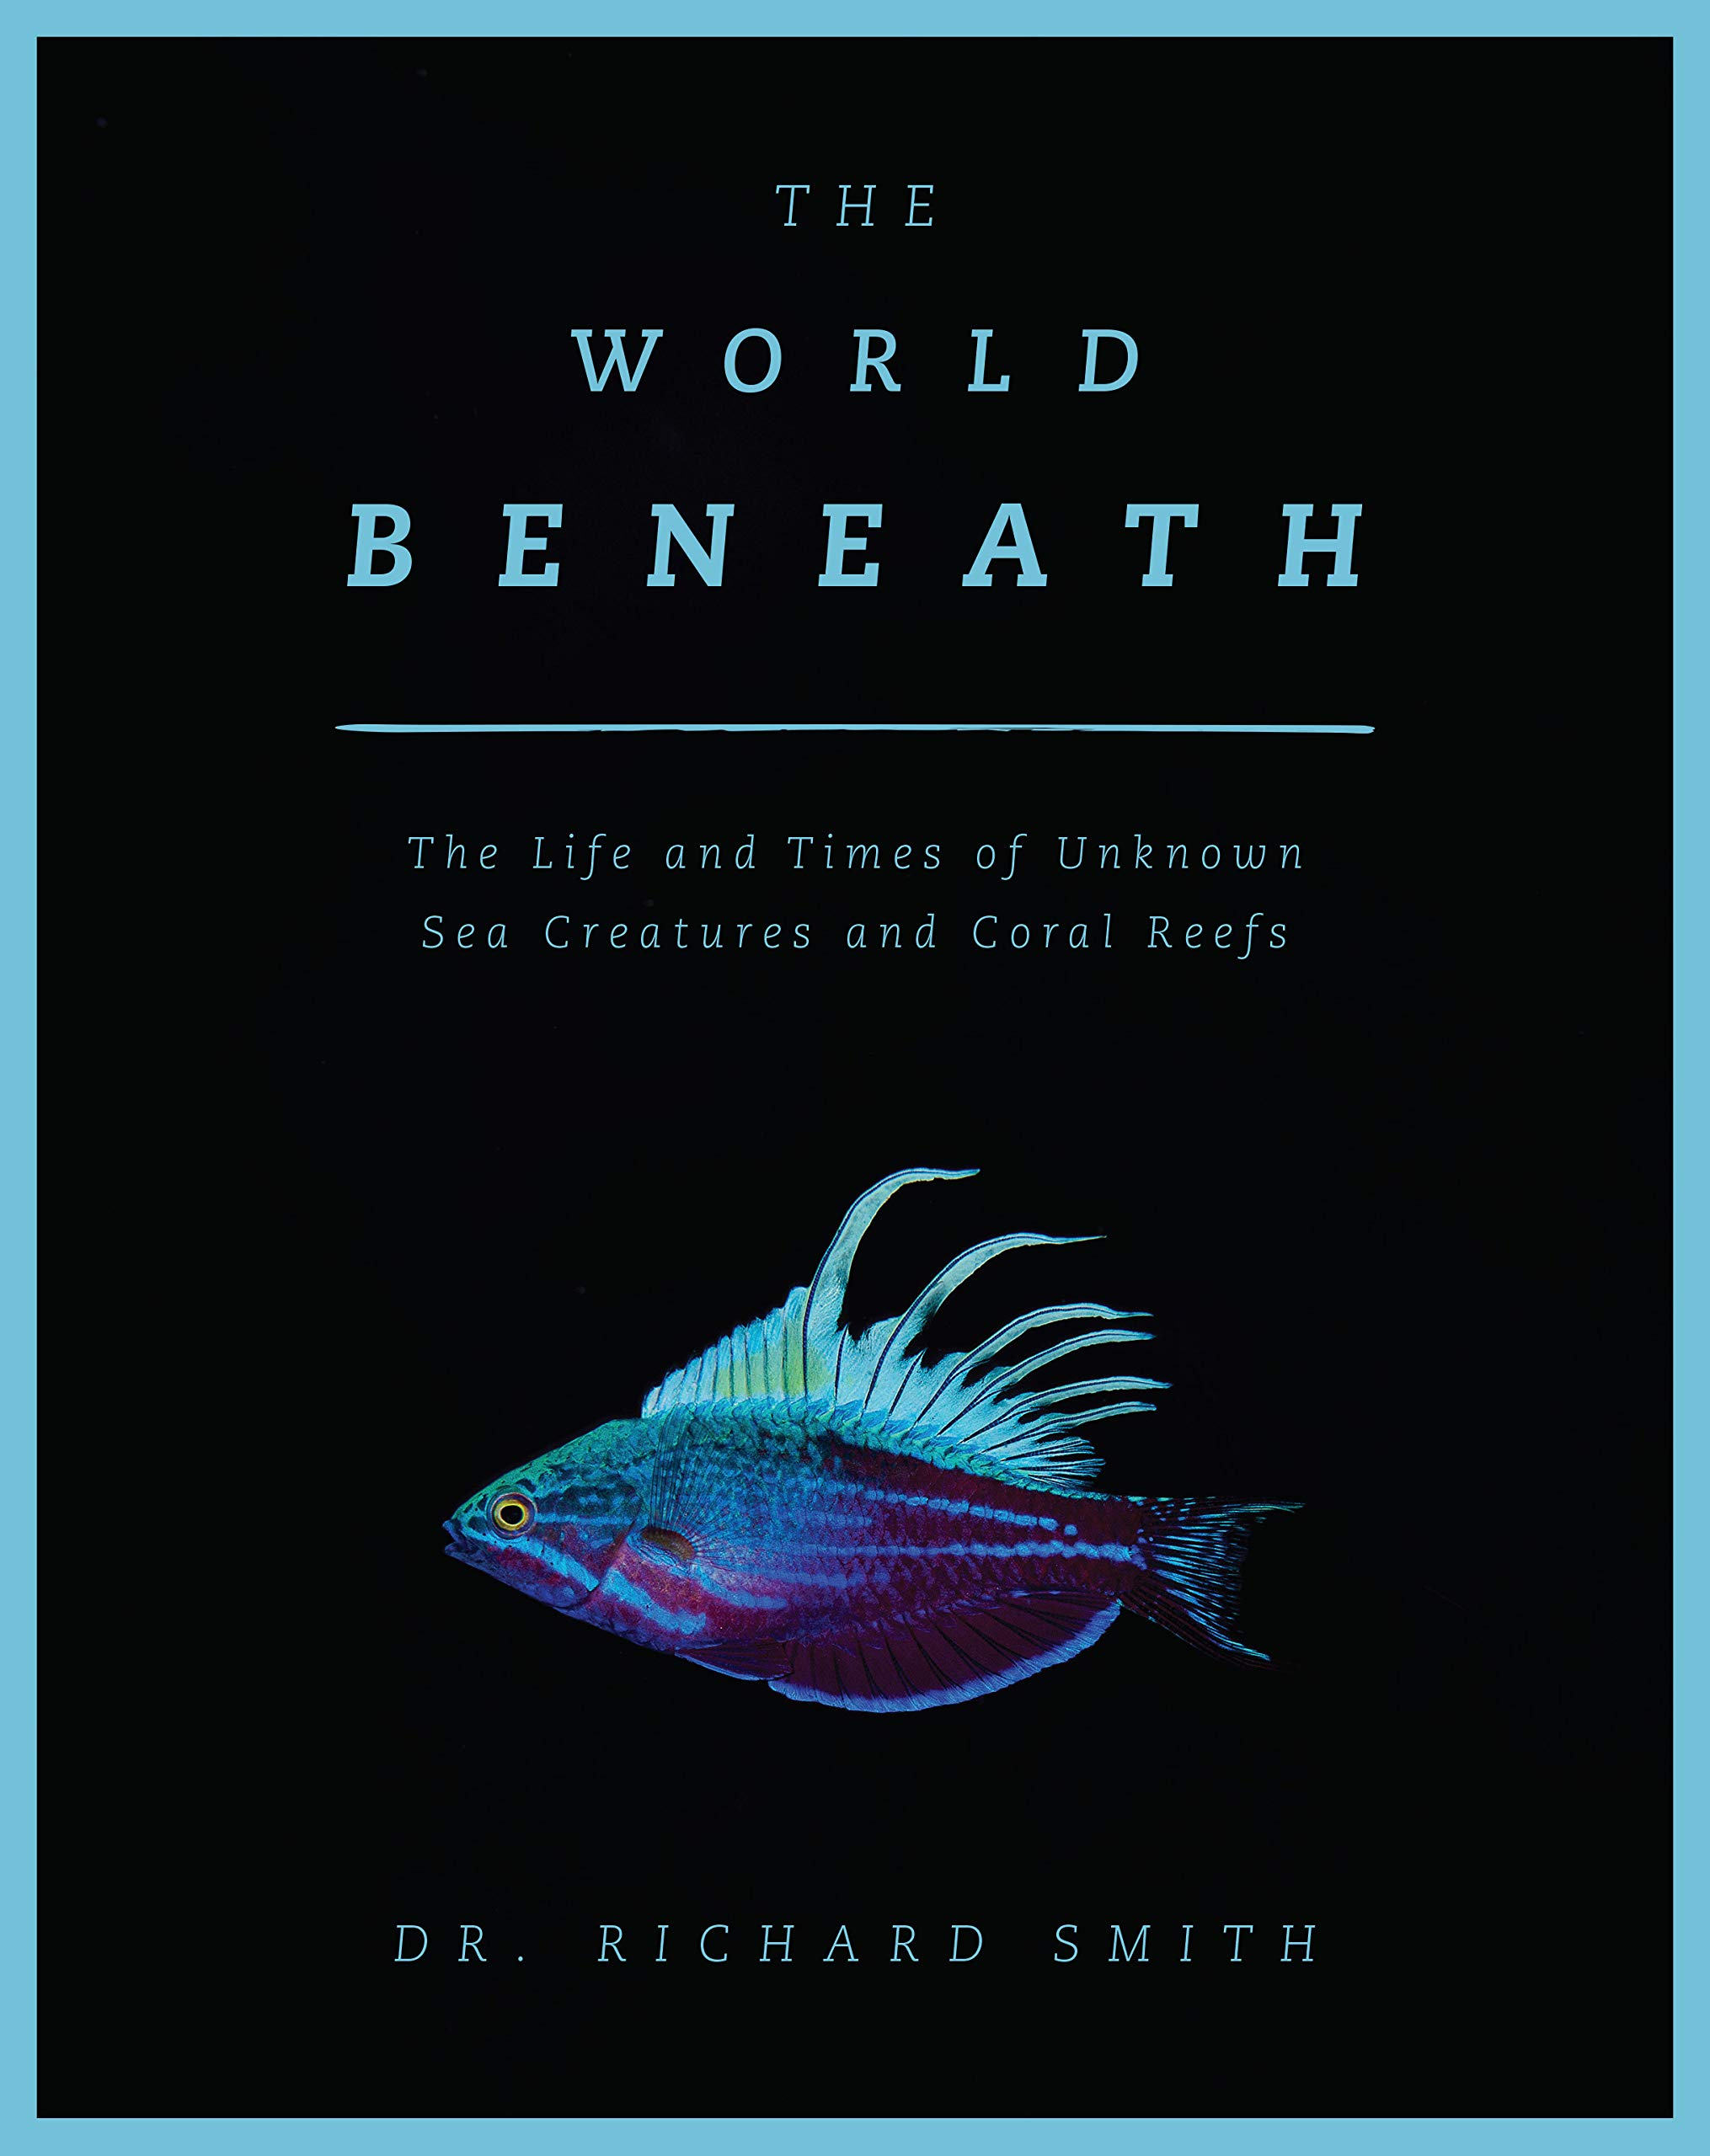 Amazon com: The World Beneath: The Life and Times of Unknown